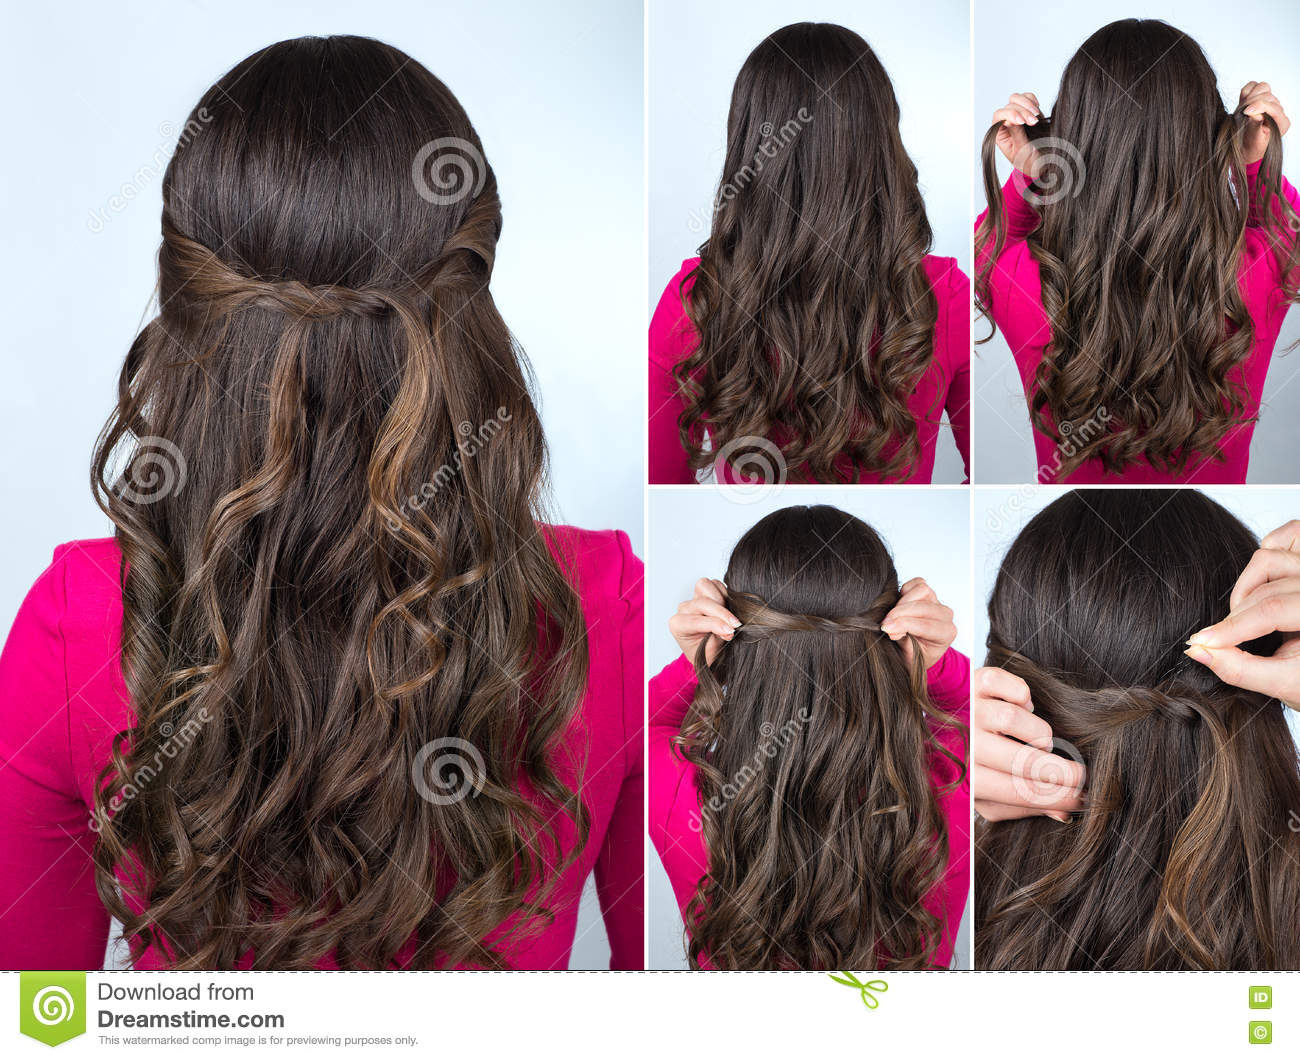 knotted hairstyle on curly